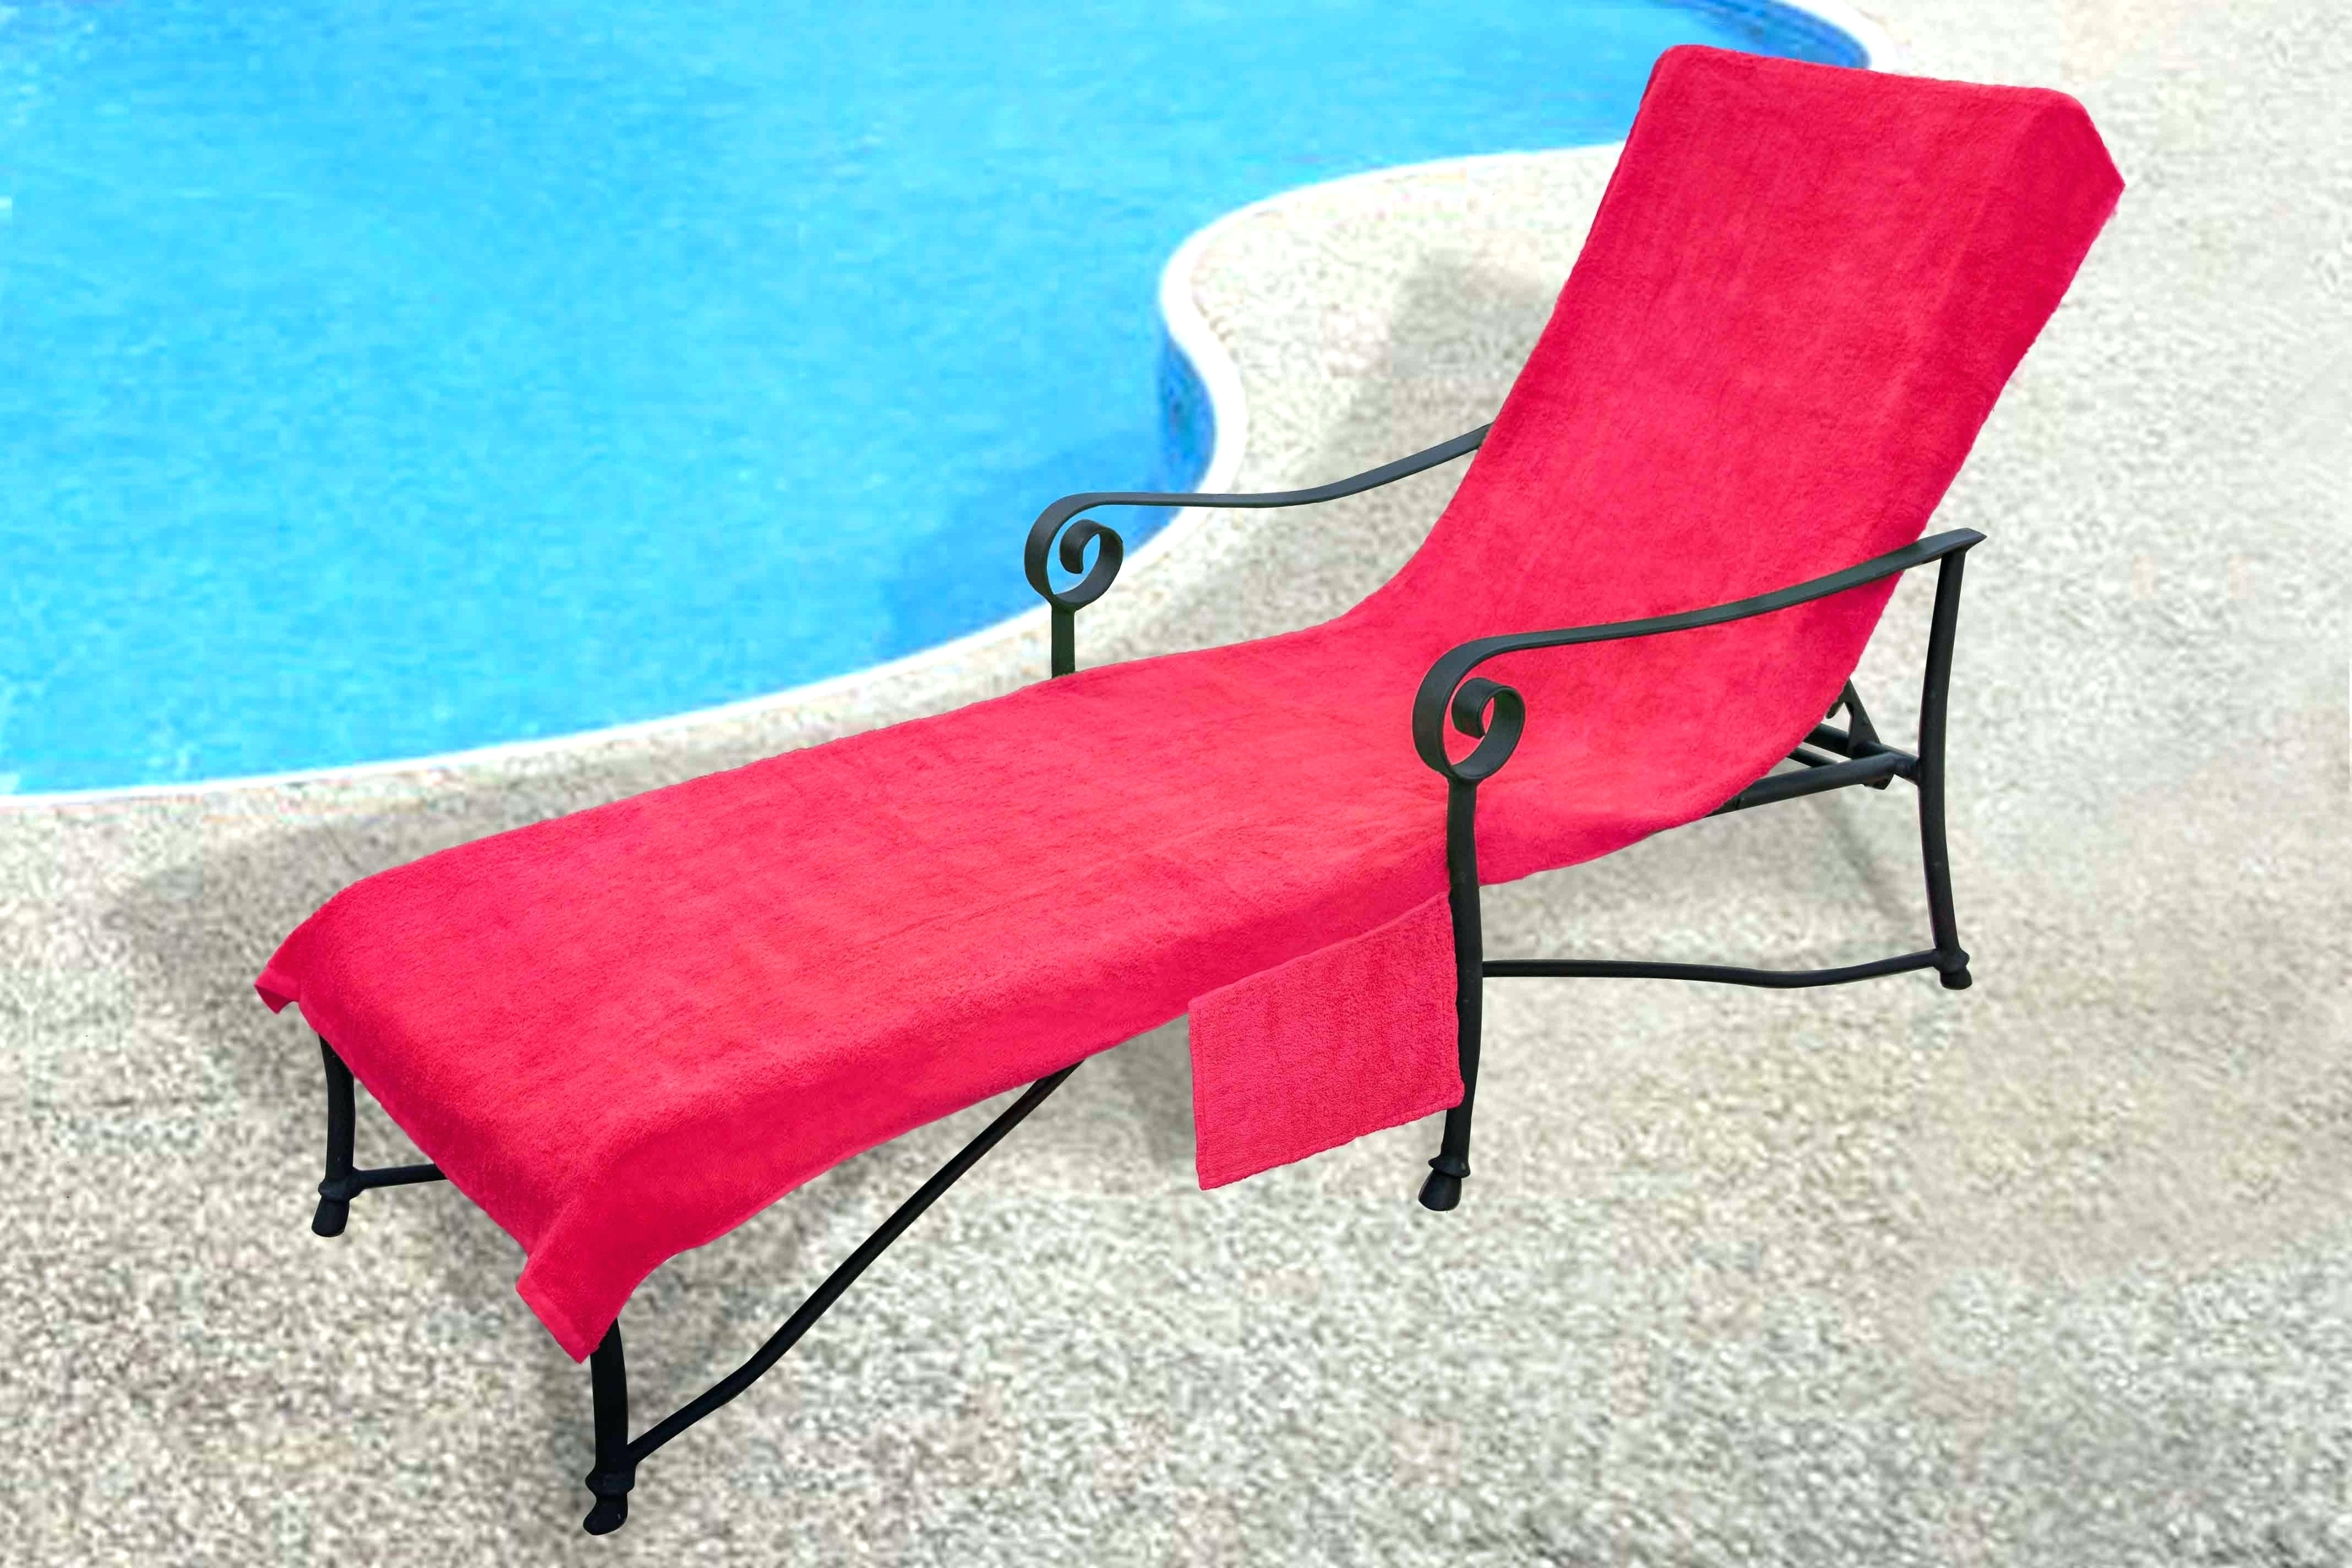 Bahama Beach Towel Chair Covers • Chair Covers Design Regarding Preferred Chaise Lounge Towel Covers (View 6 of 15)